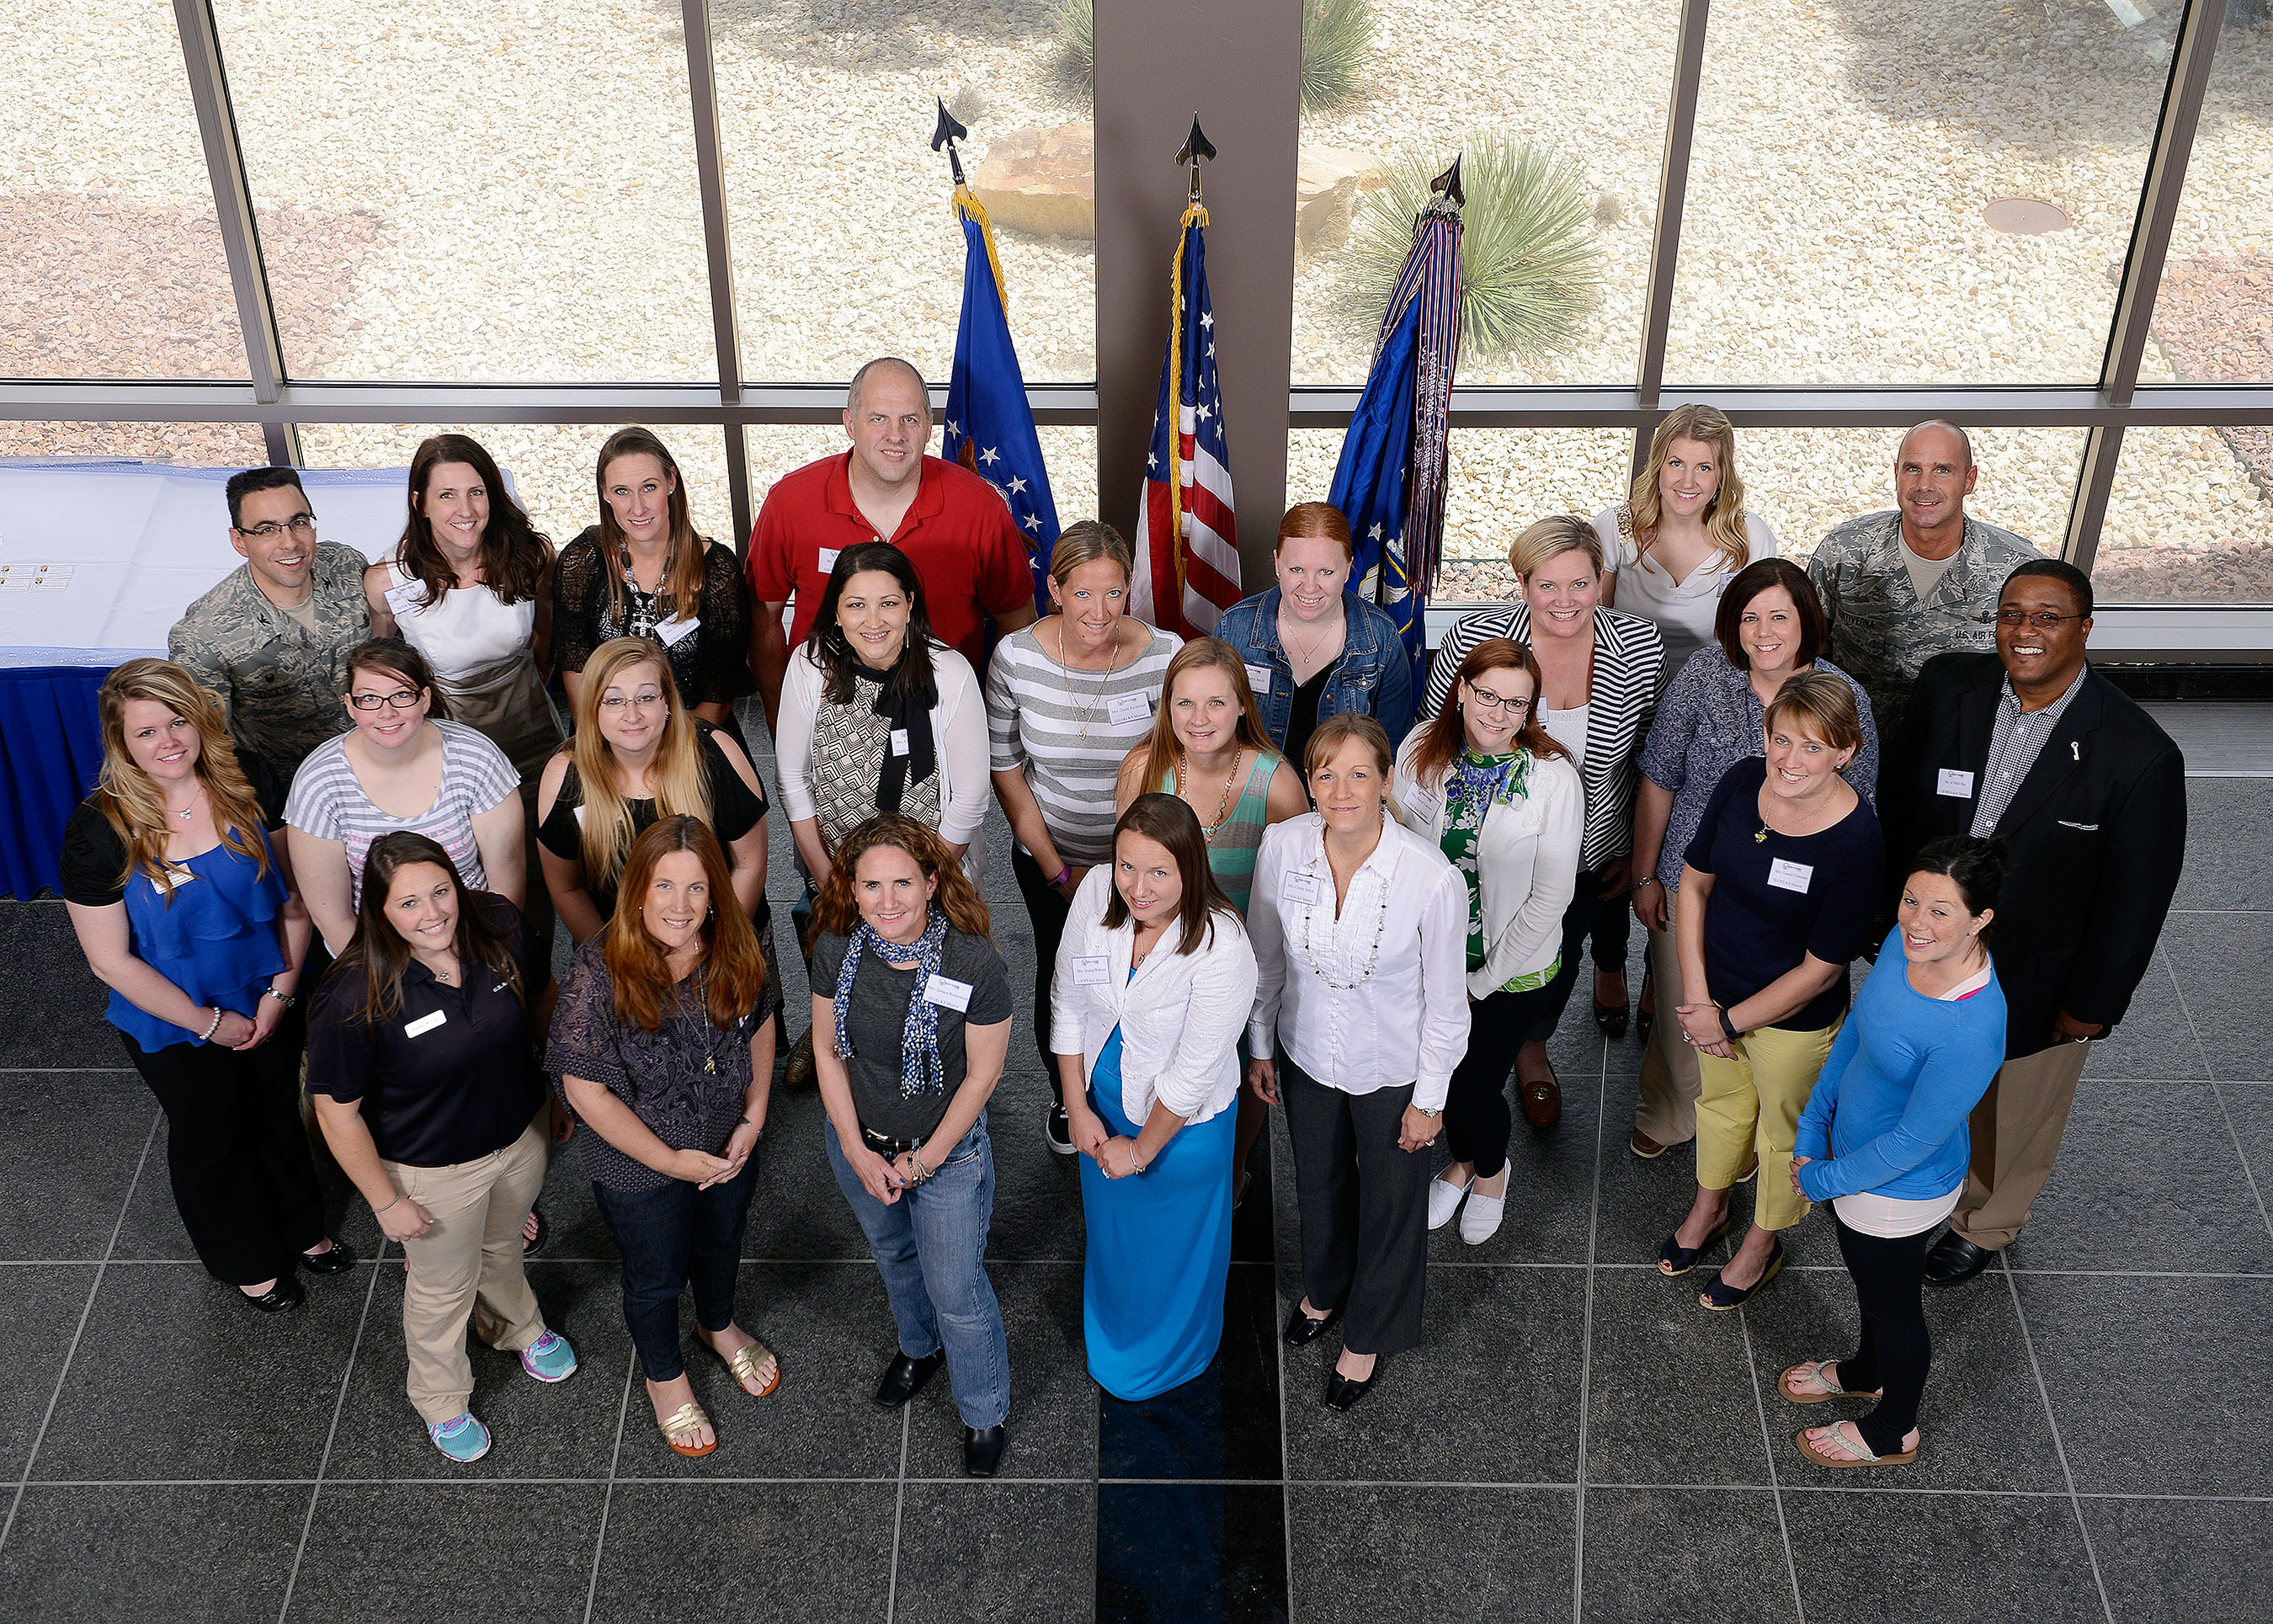 U.S. Air Force photo/Christopher DeWitt Col. Bill Liquori 50th Space Wing commander, left, and Chief Master Sgt. John Bentivengna, 50 SW command chief, stand with key spouses following a luncheon Friday at Schriever Air Force Base, Colo. Liquori held the luncheon, and presented each key spouse with a certificate and token of appreciation, as a way to say thank you to the all-volunteer group. In Liquori's two years as commander, the program has grown from a group of 11 volunteers to 64, with each squadron having at least one key spouse.